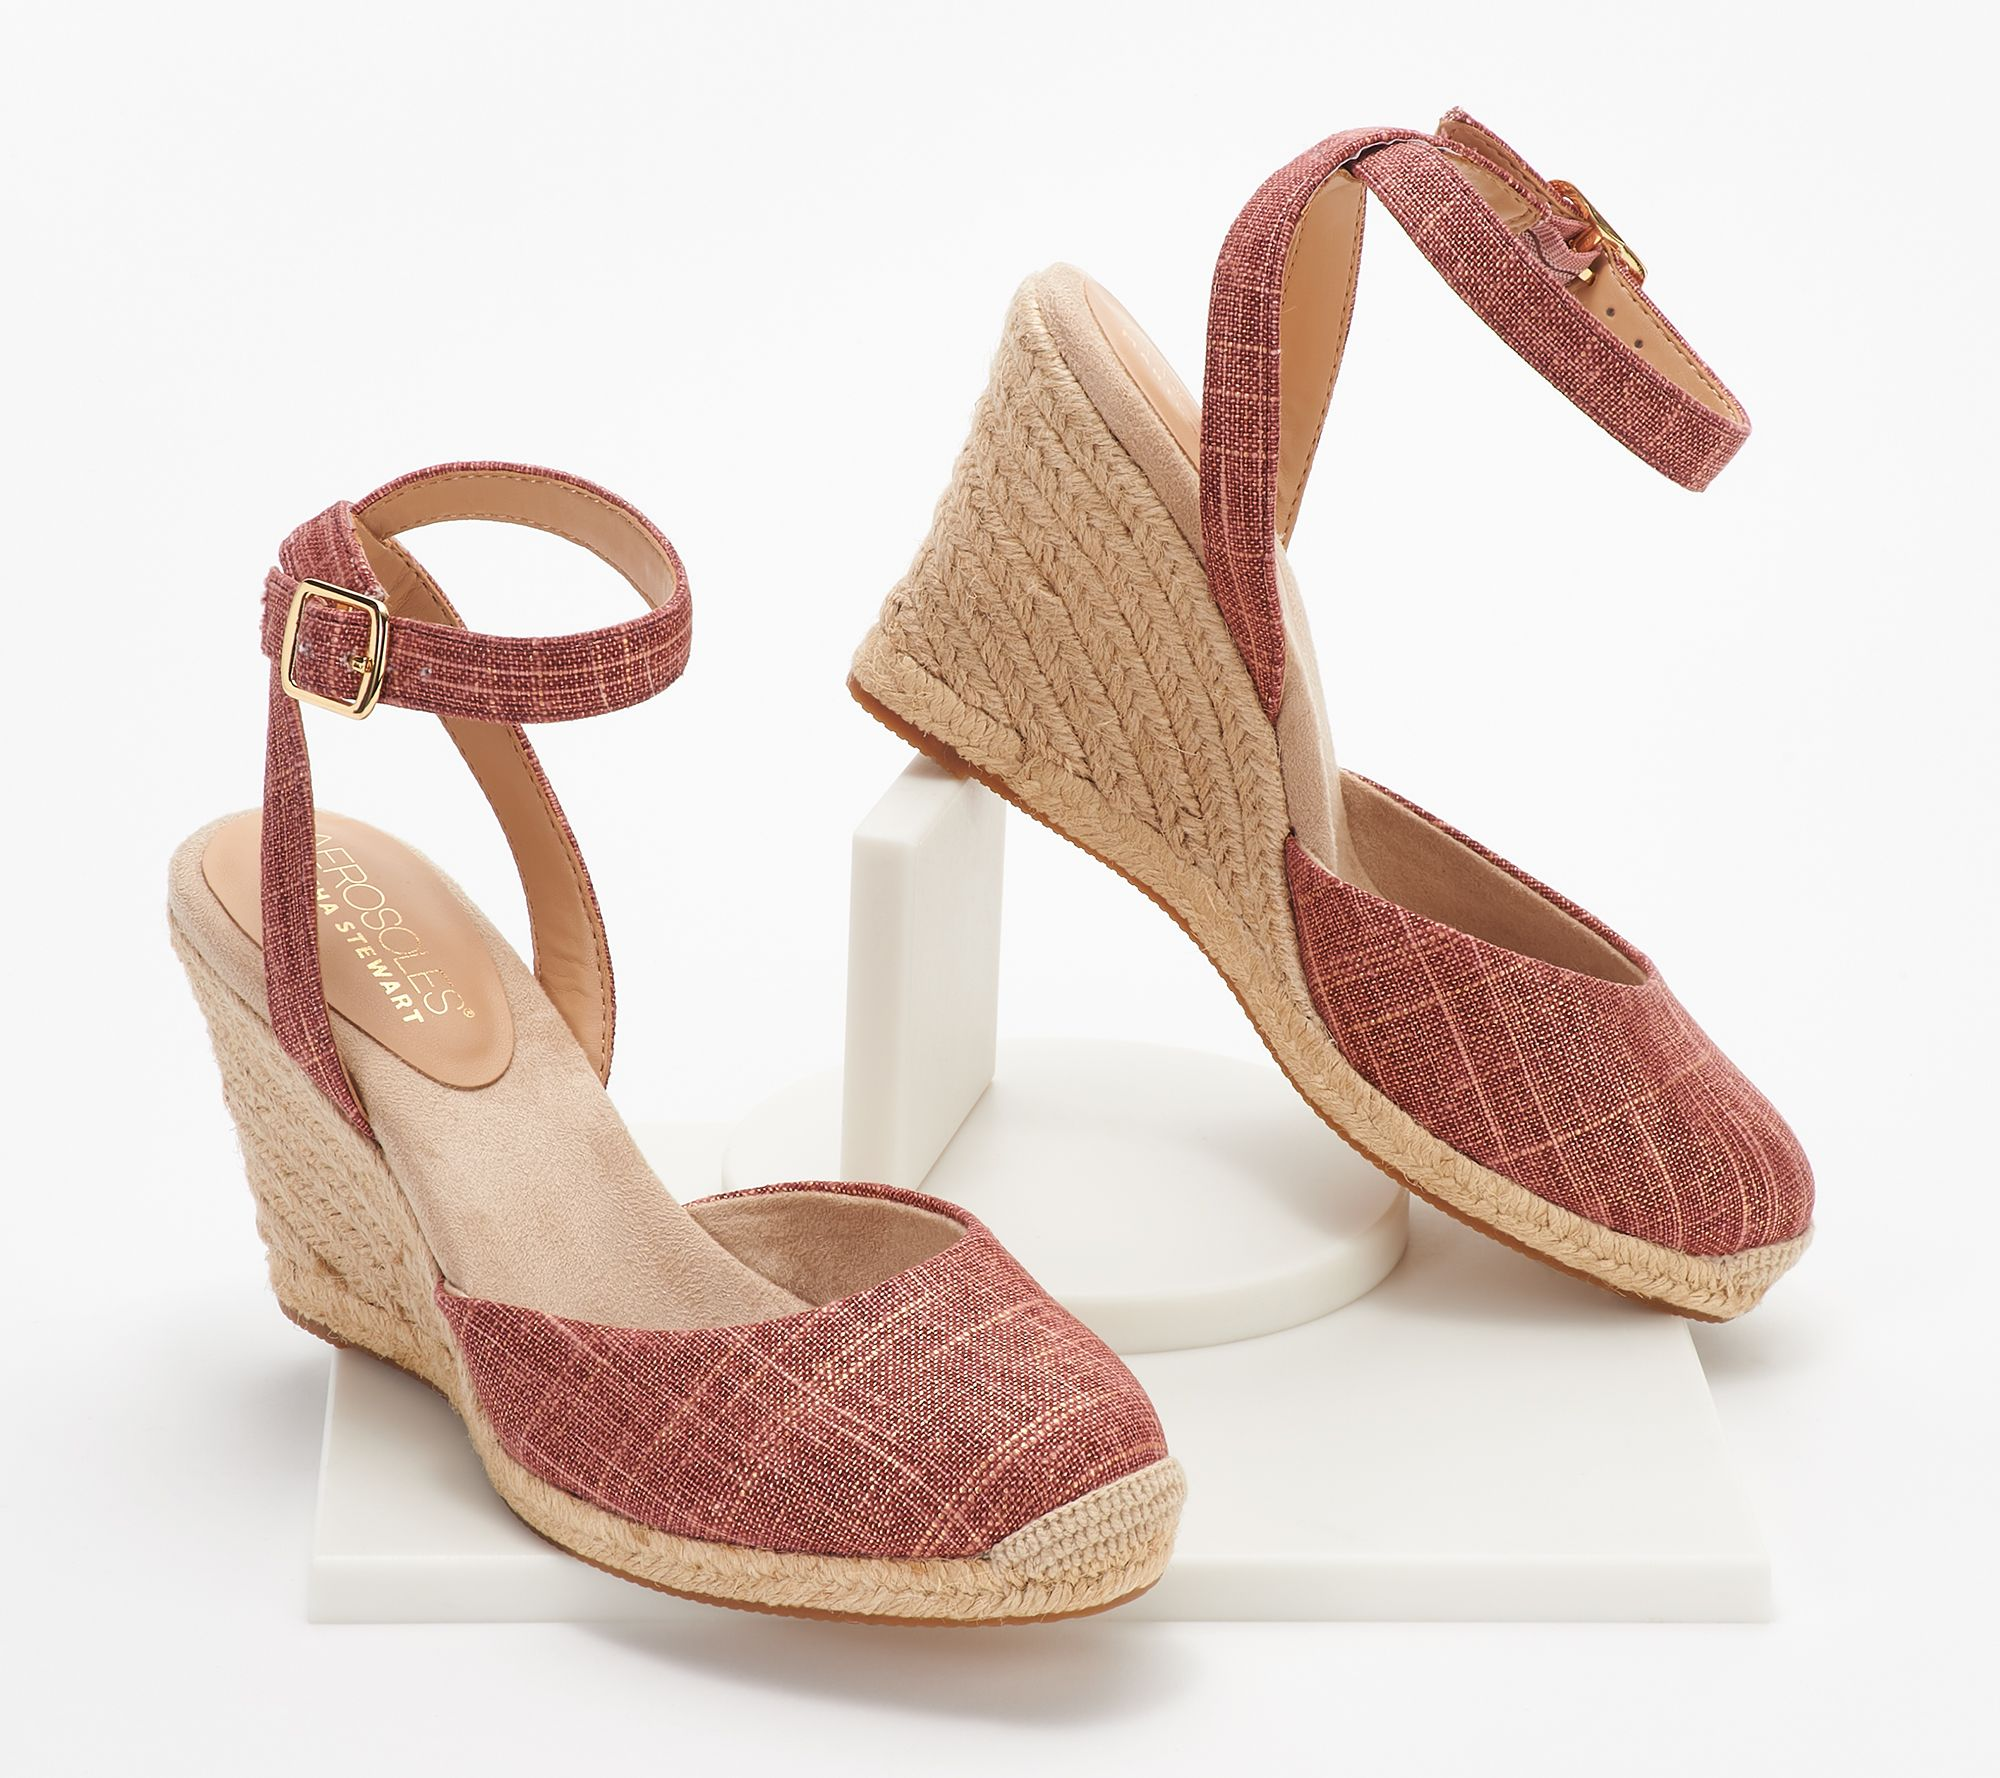 650b86cc56 Aerosoles x Martha Stewart Two Piece Wedges - Meadow - Page 1 — QVC.com